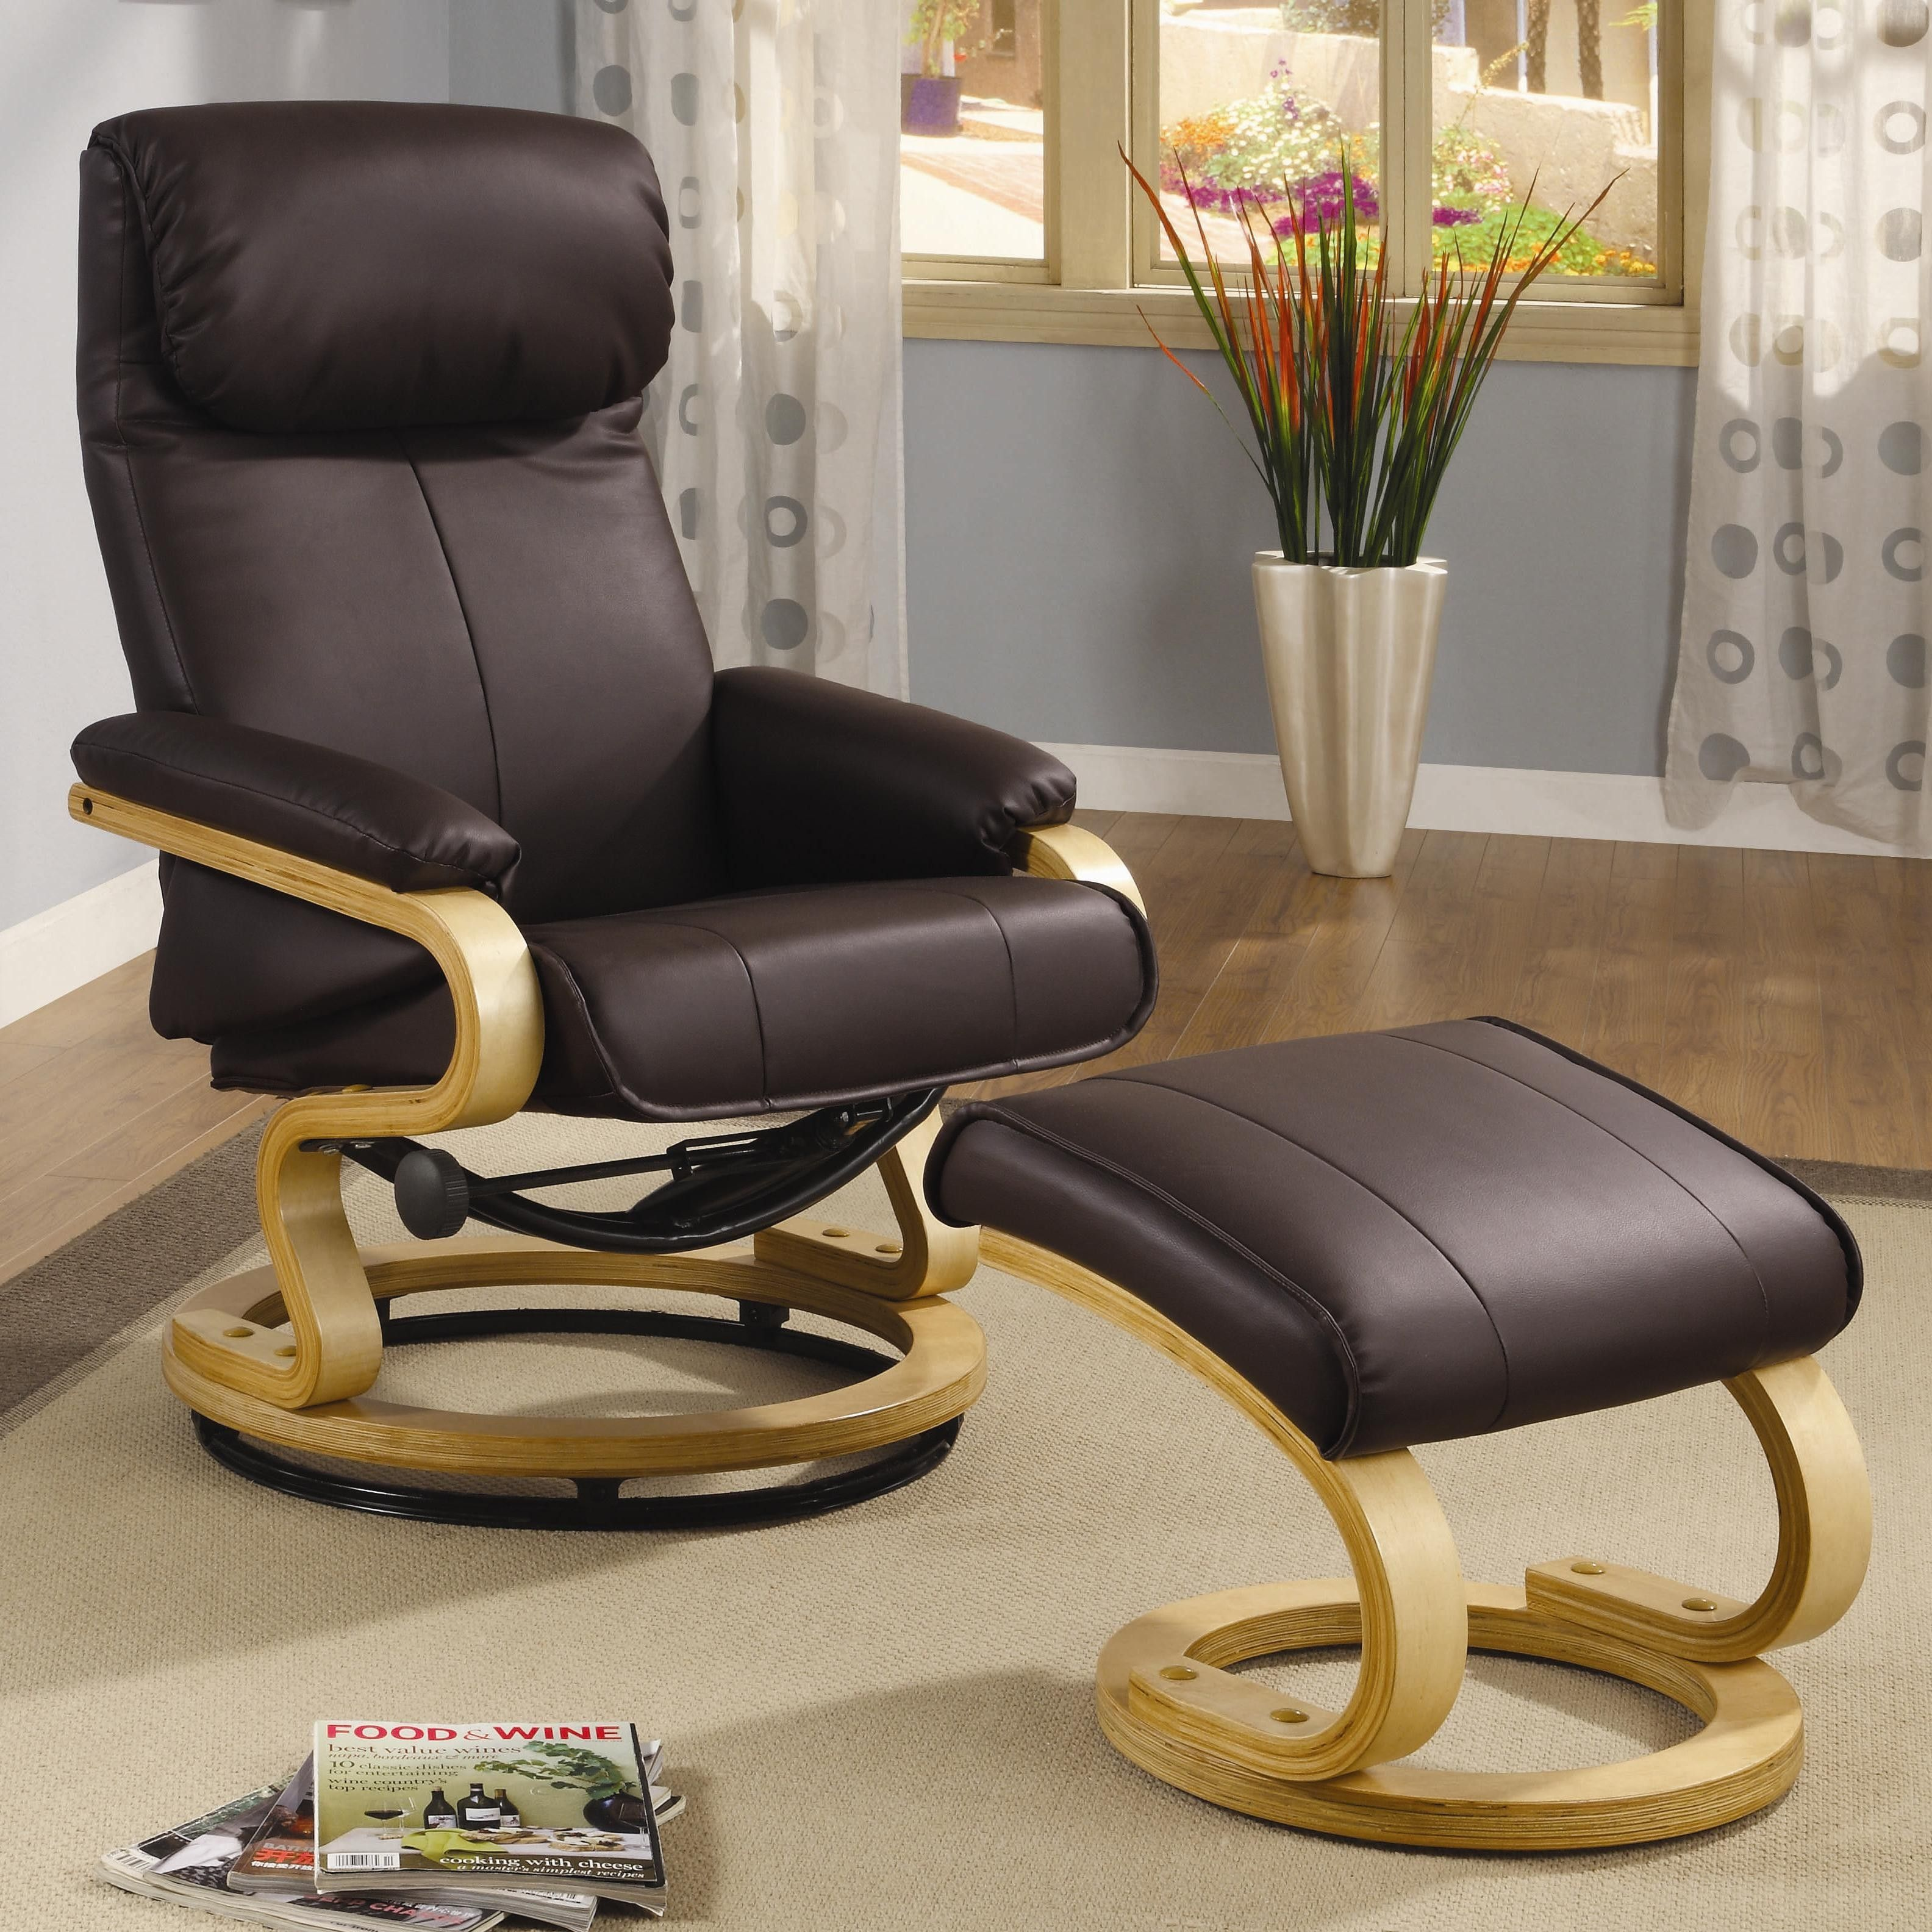 stylish designer recliner chairs